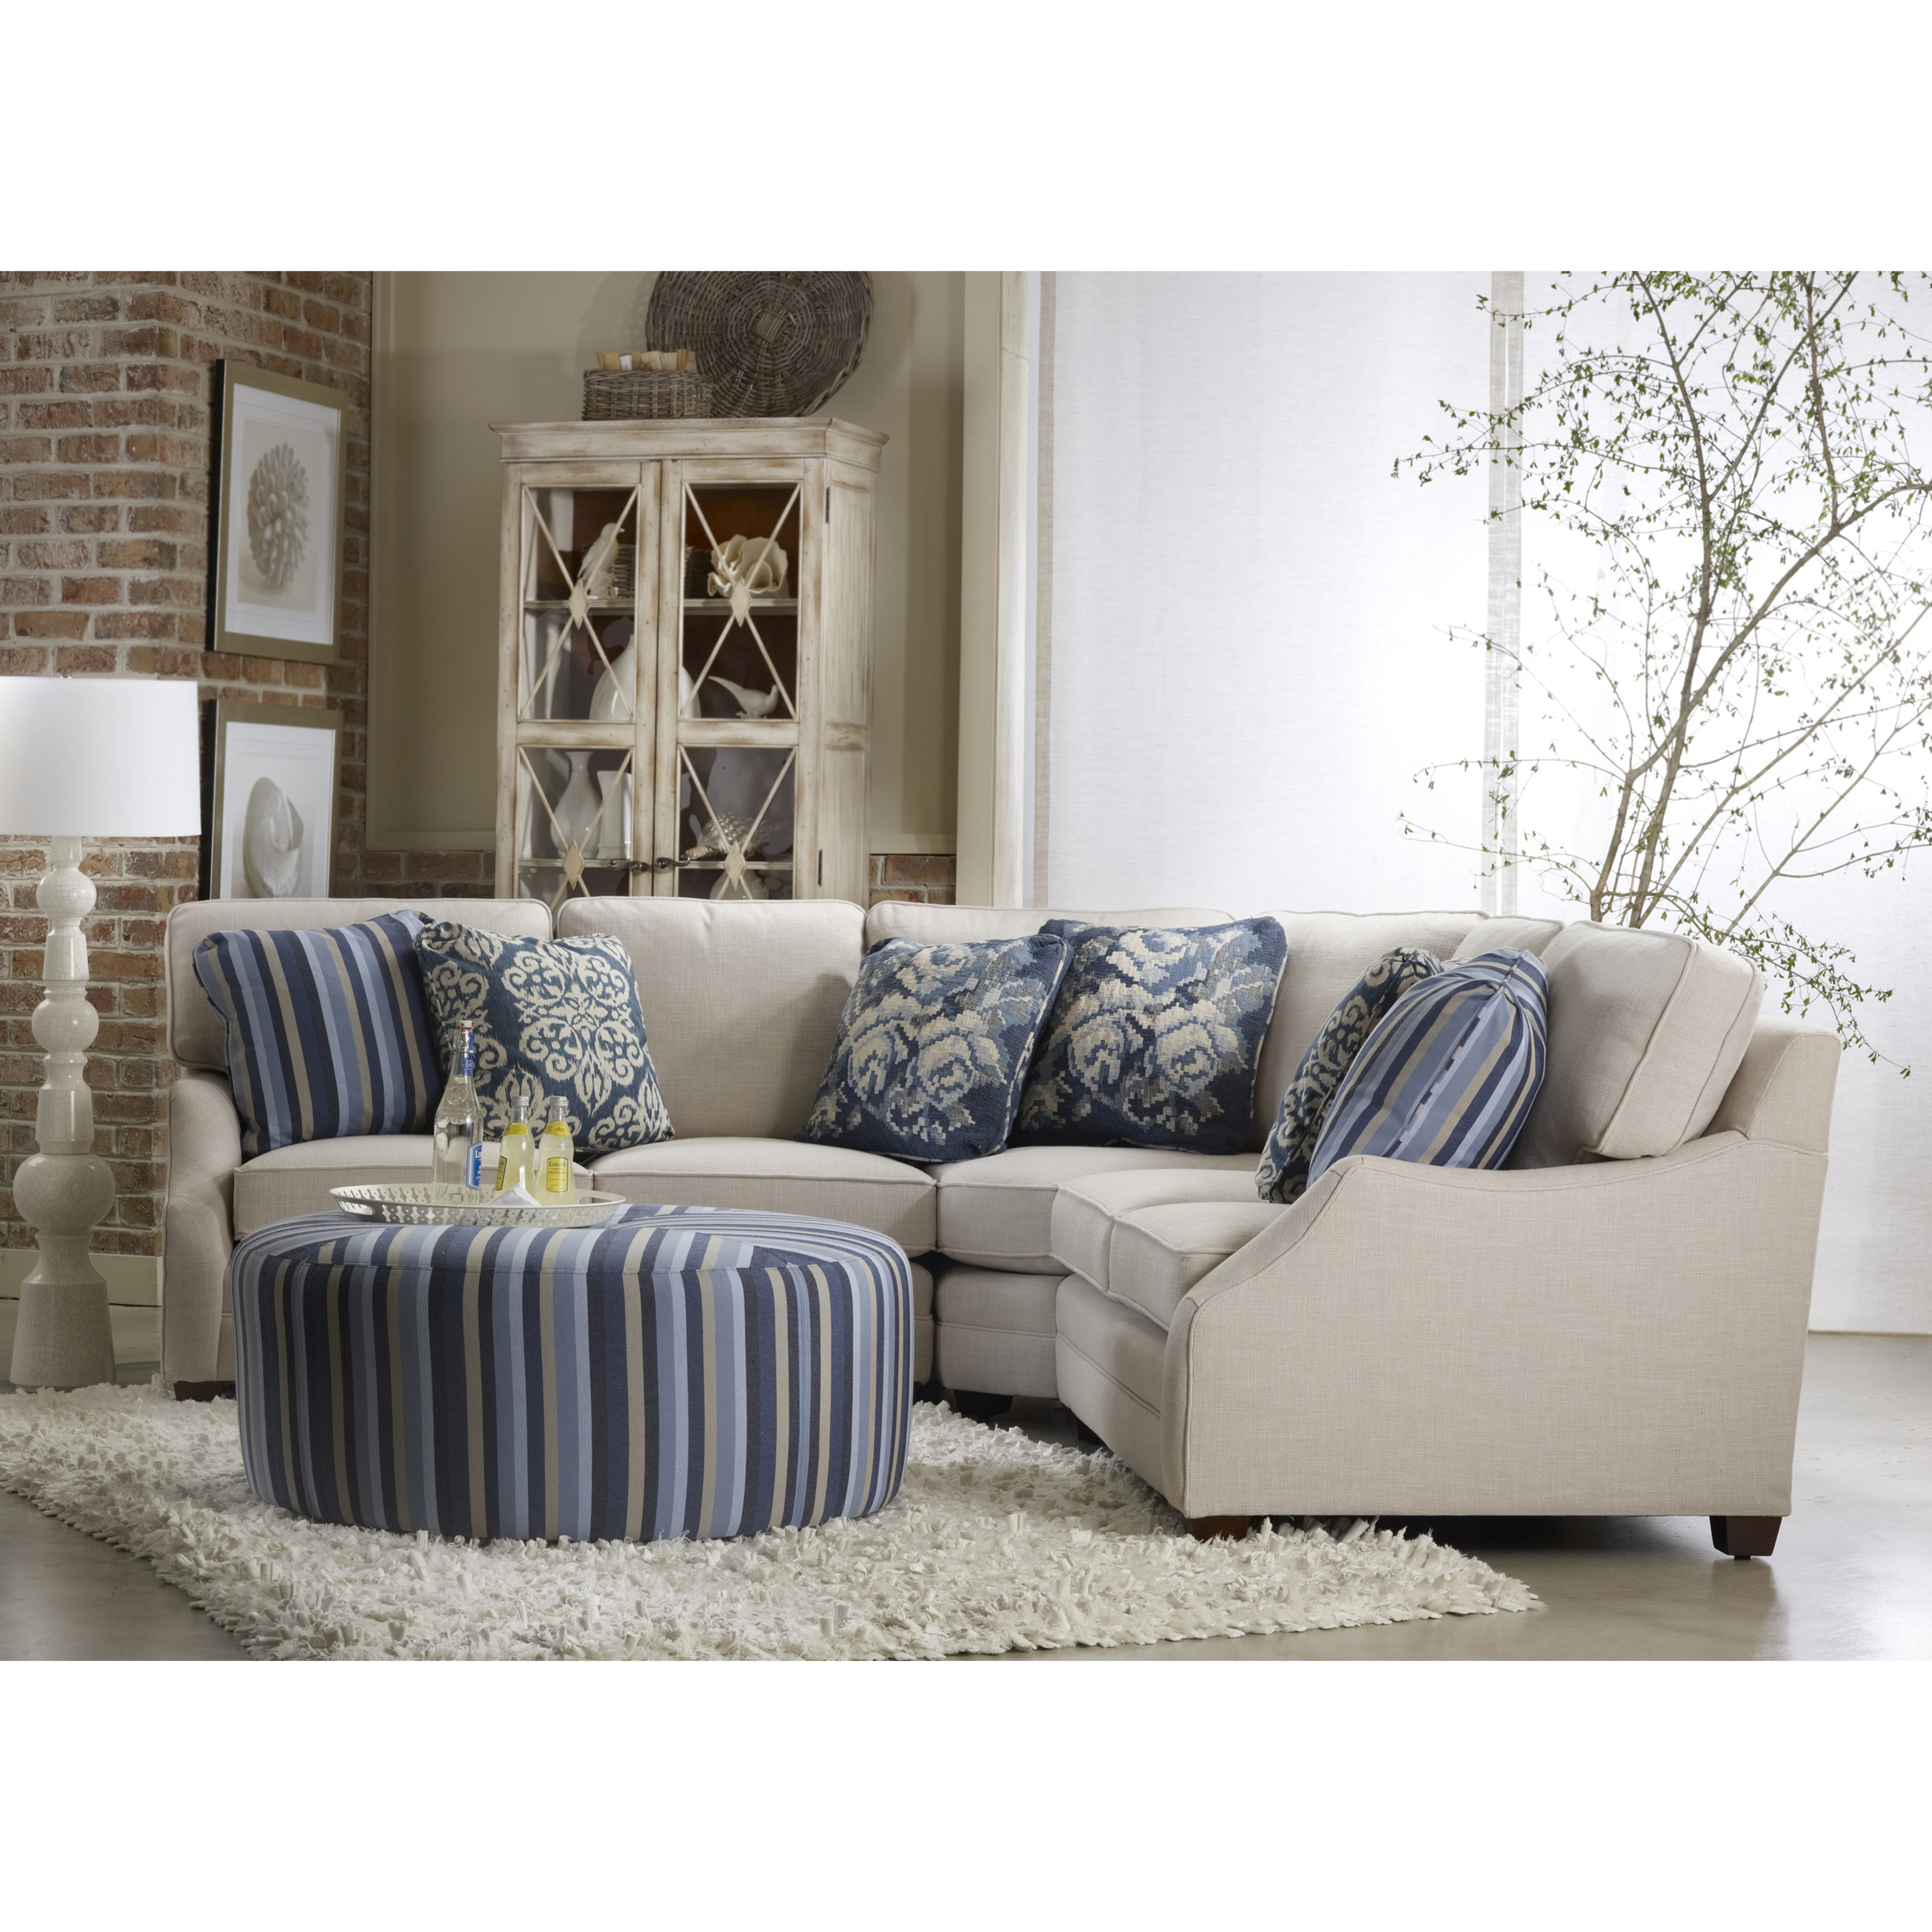 Incroyable Sam Moore Rita Sectional With Ottoman Small Reclining Sectional 1